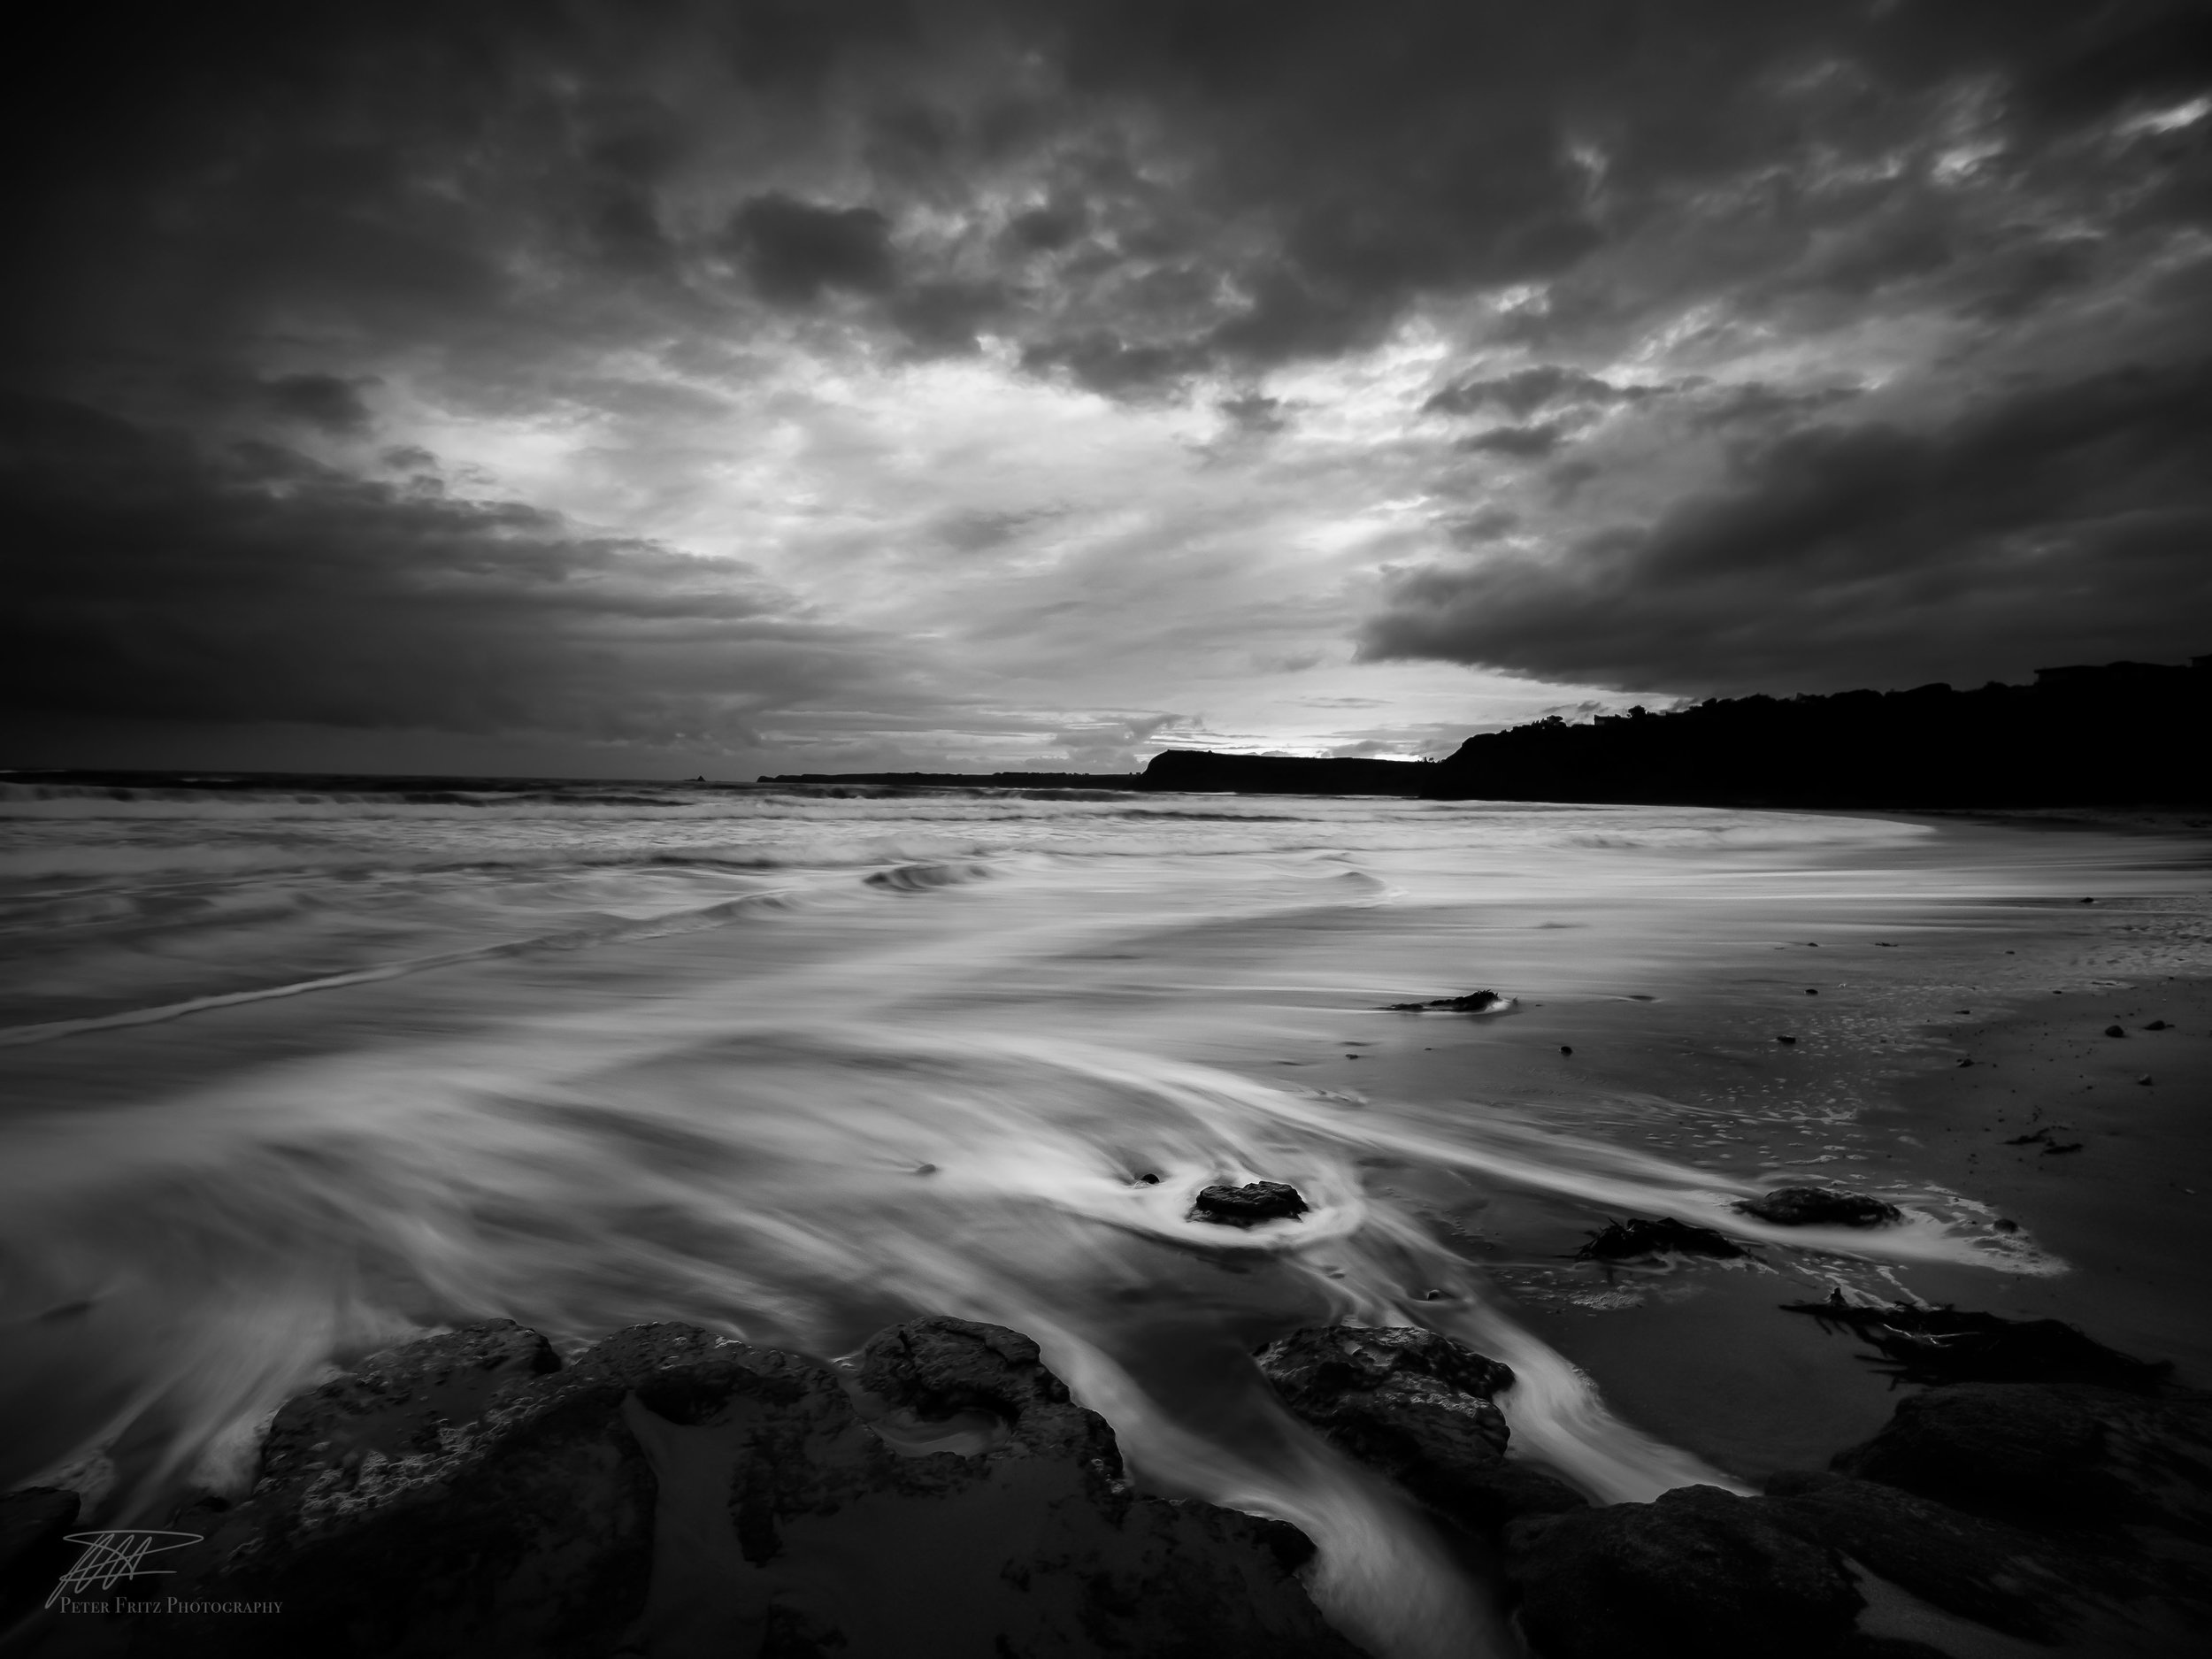 This BNW edit has made the clouds look more dramatic around the periphery of the sky allowing the light in middle to draw the views eyes to the centre of the image.